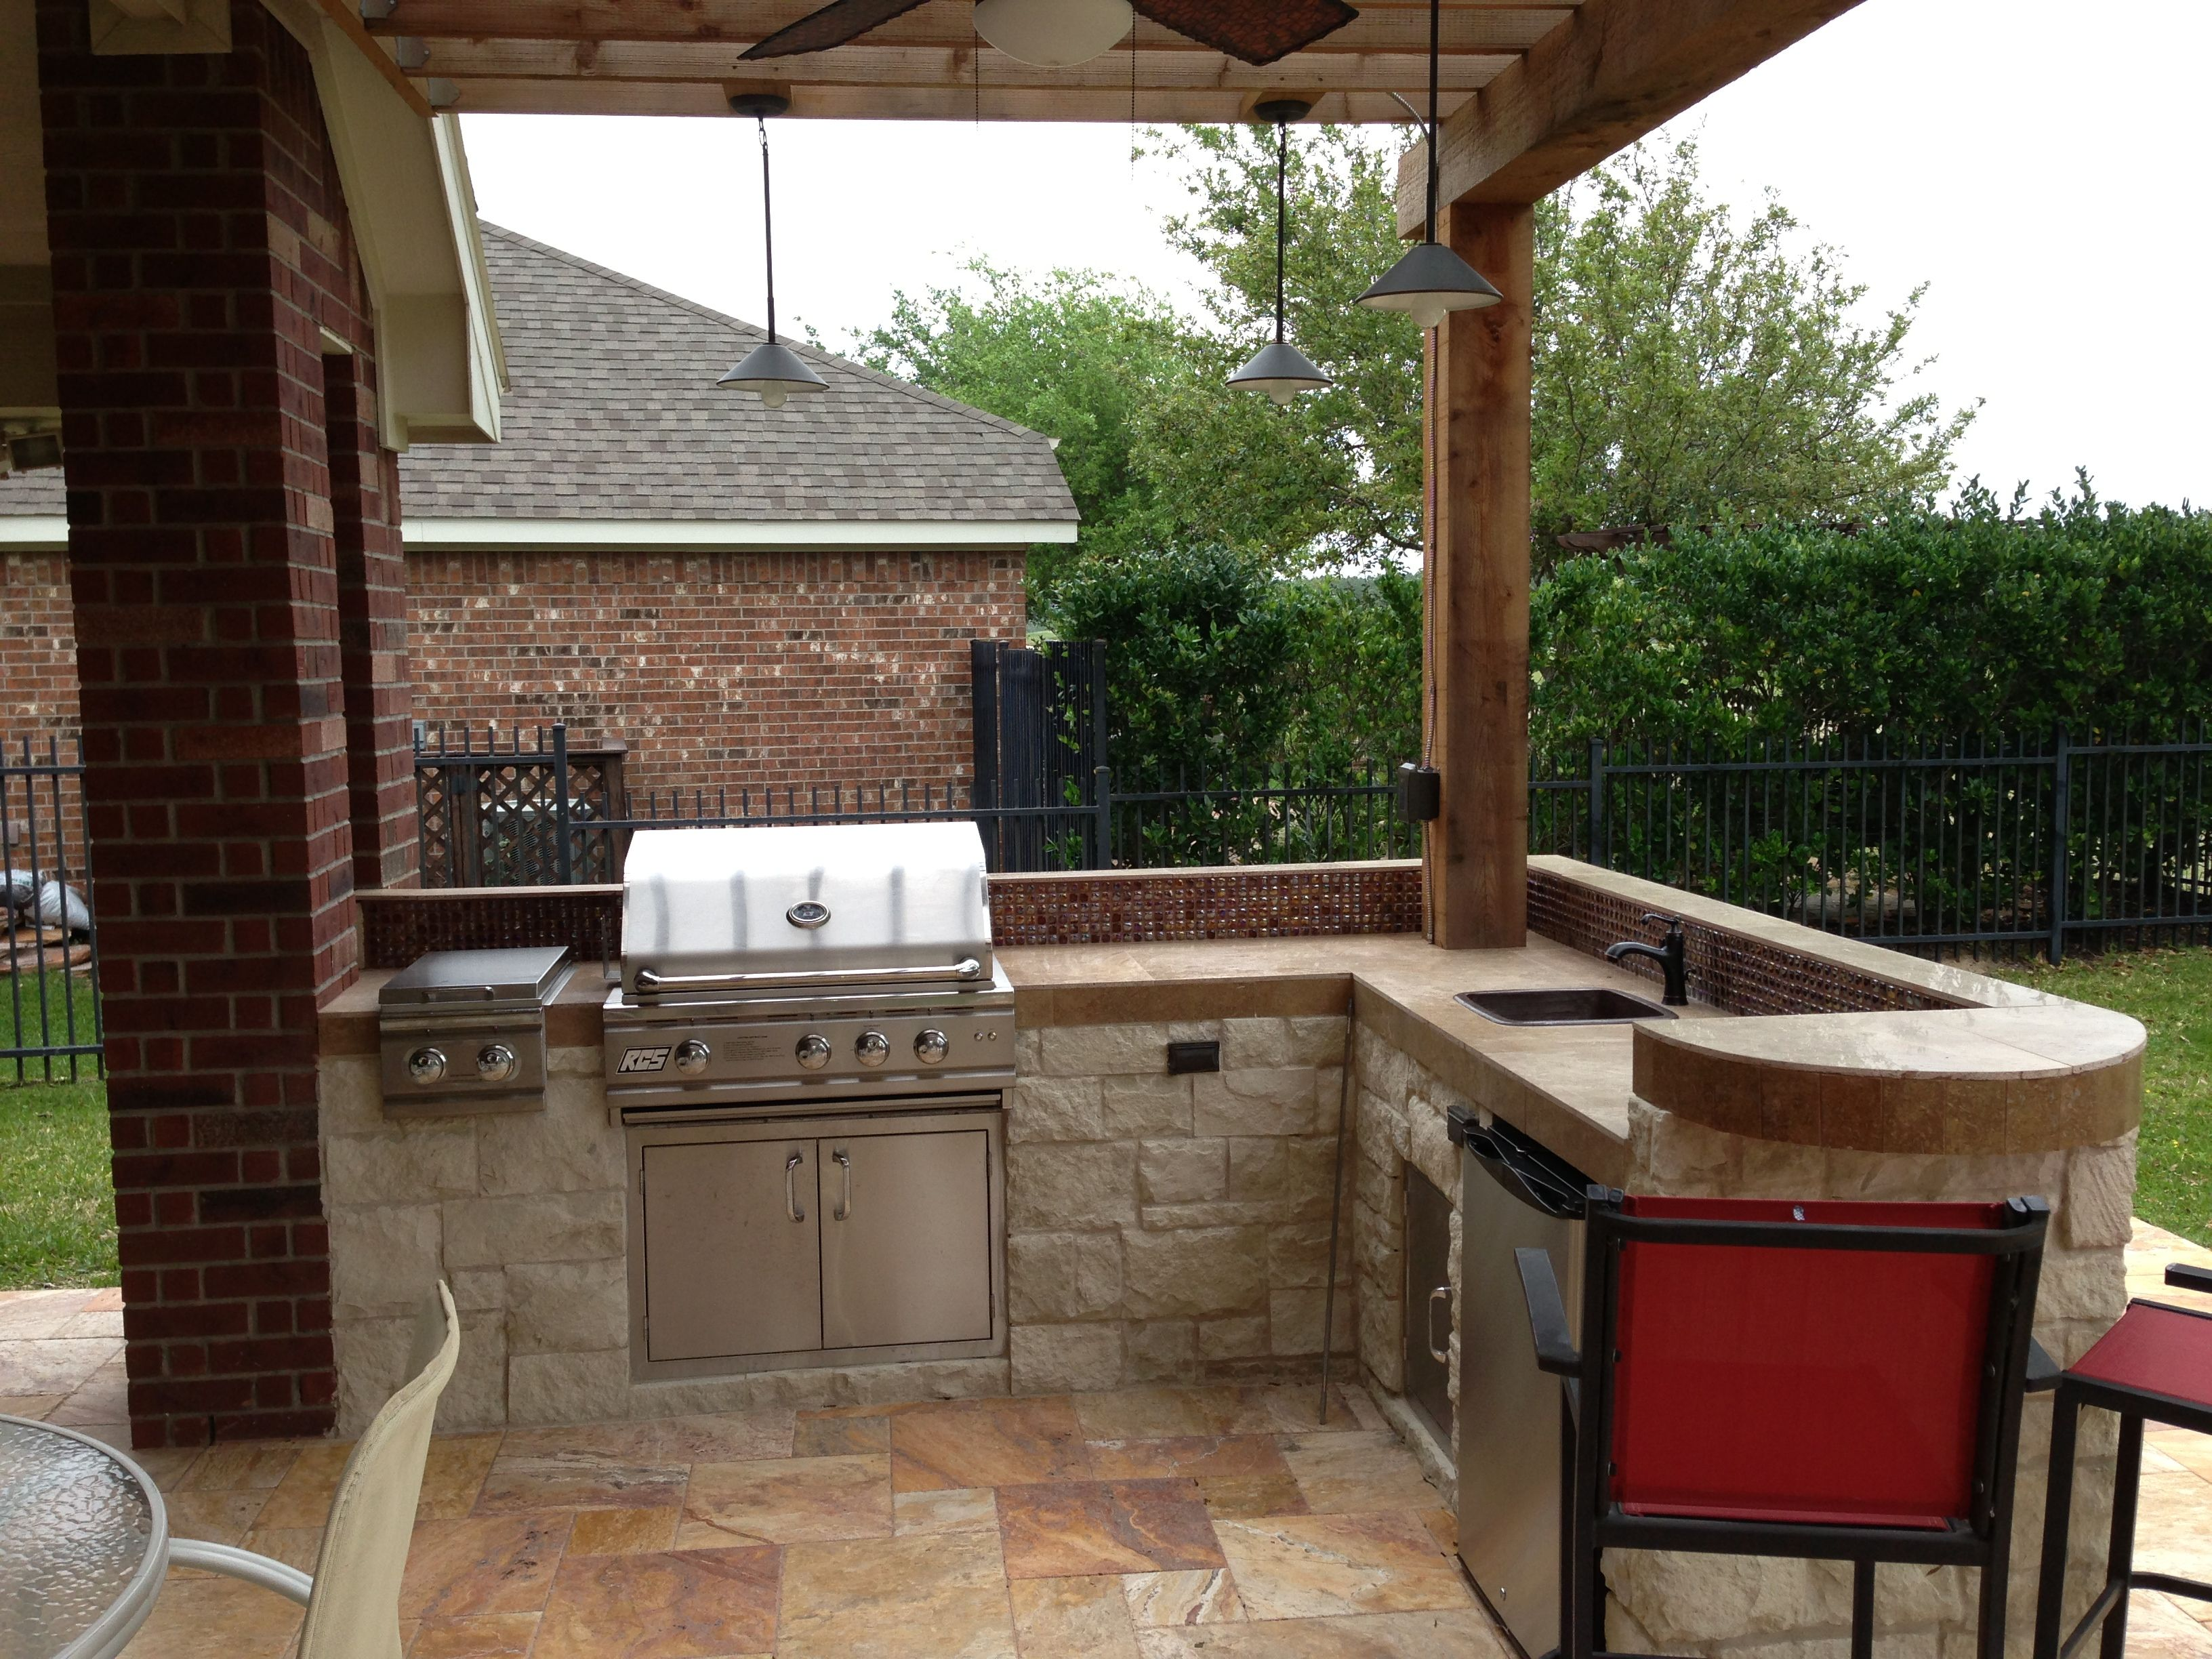 Small l shape outdoor kitchen with bar seating for Outdoor kitchen bar plans